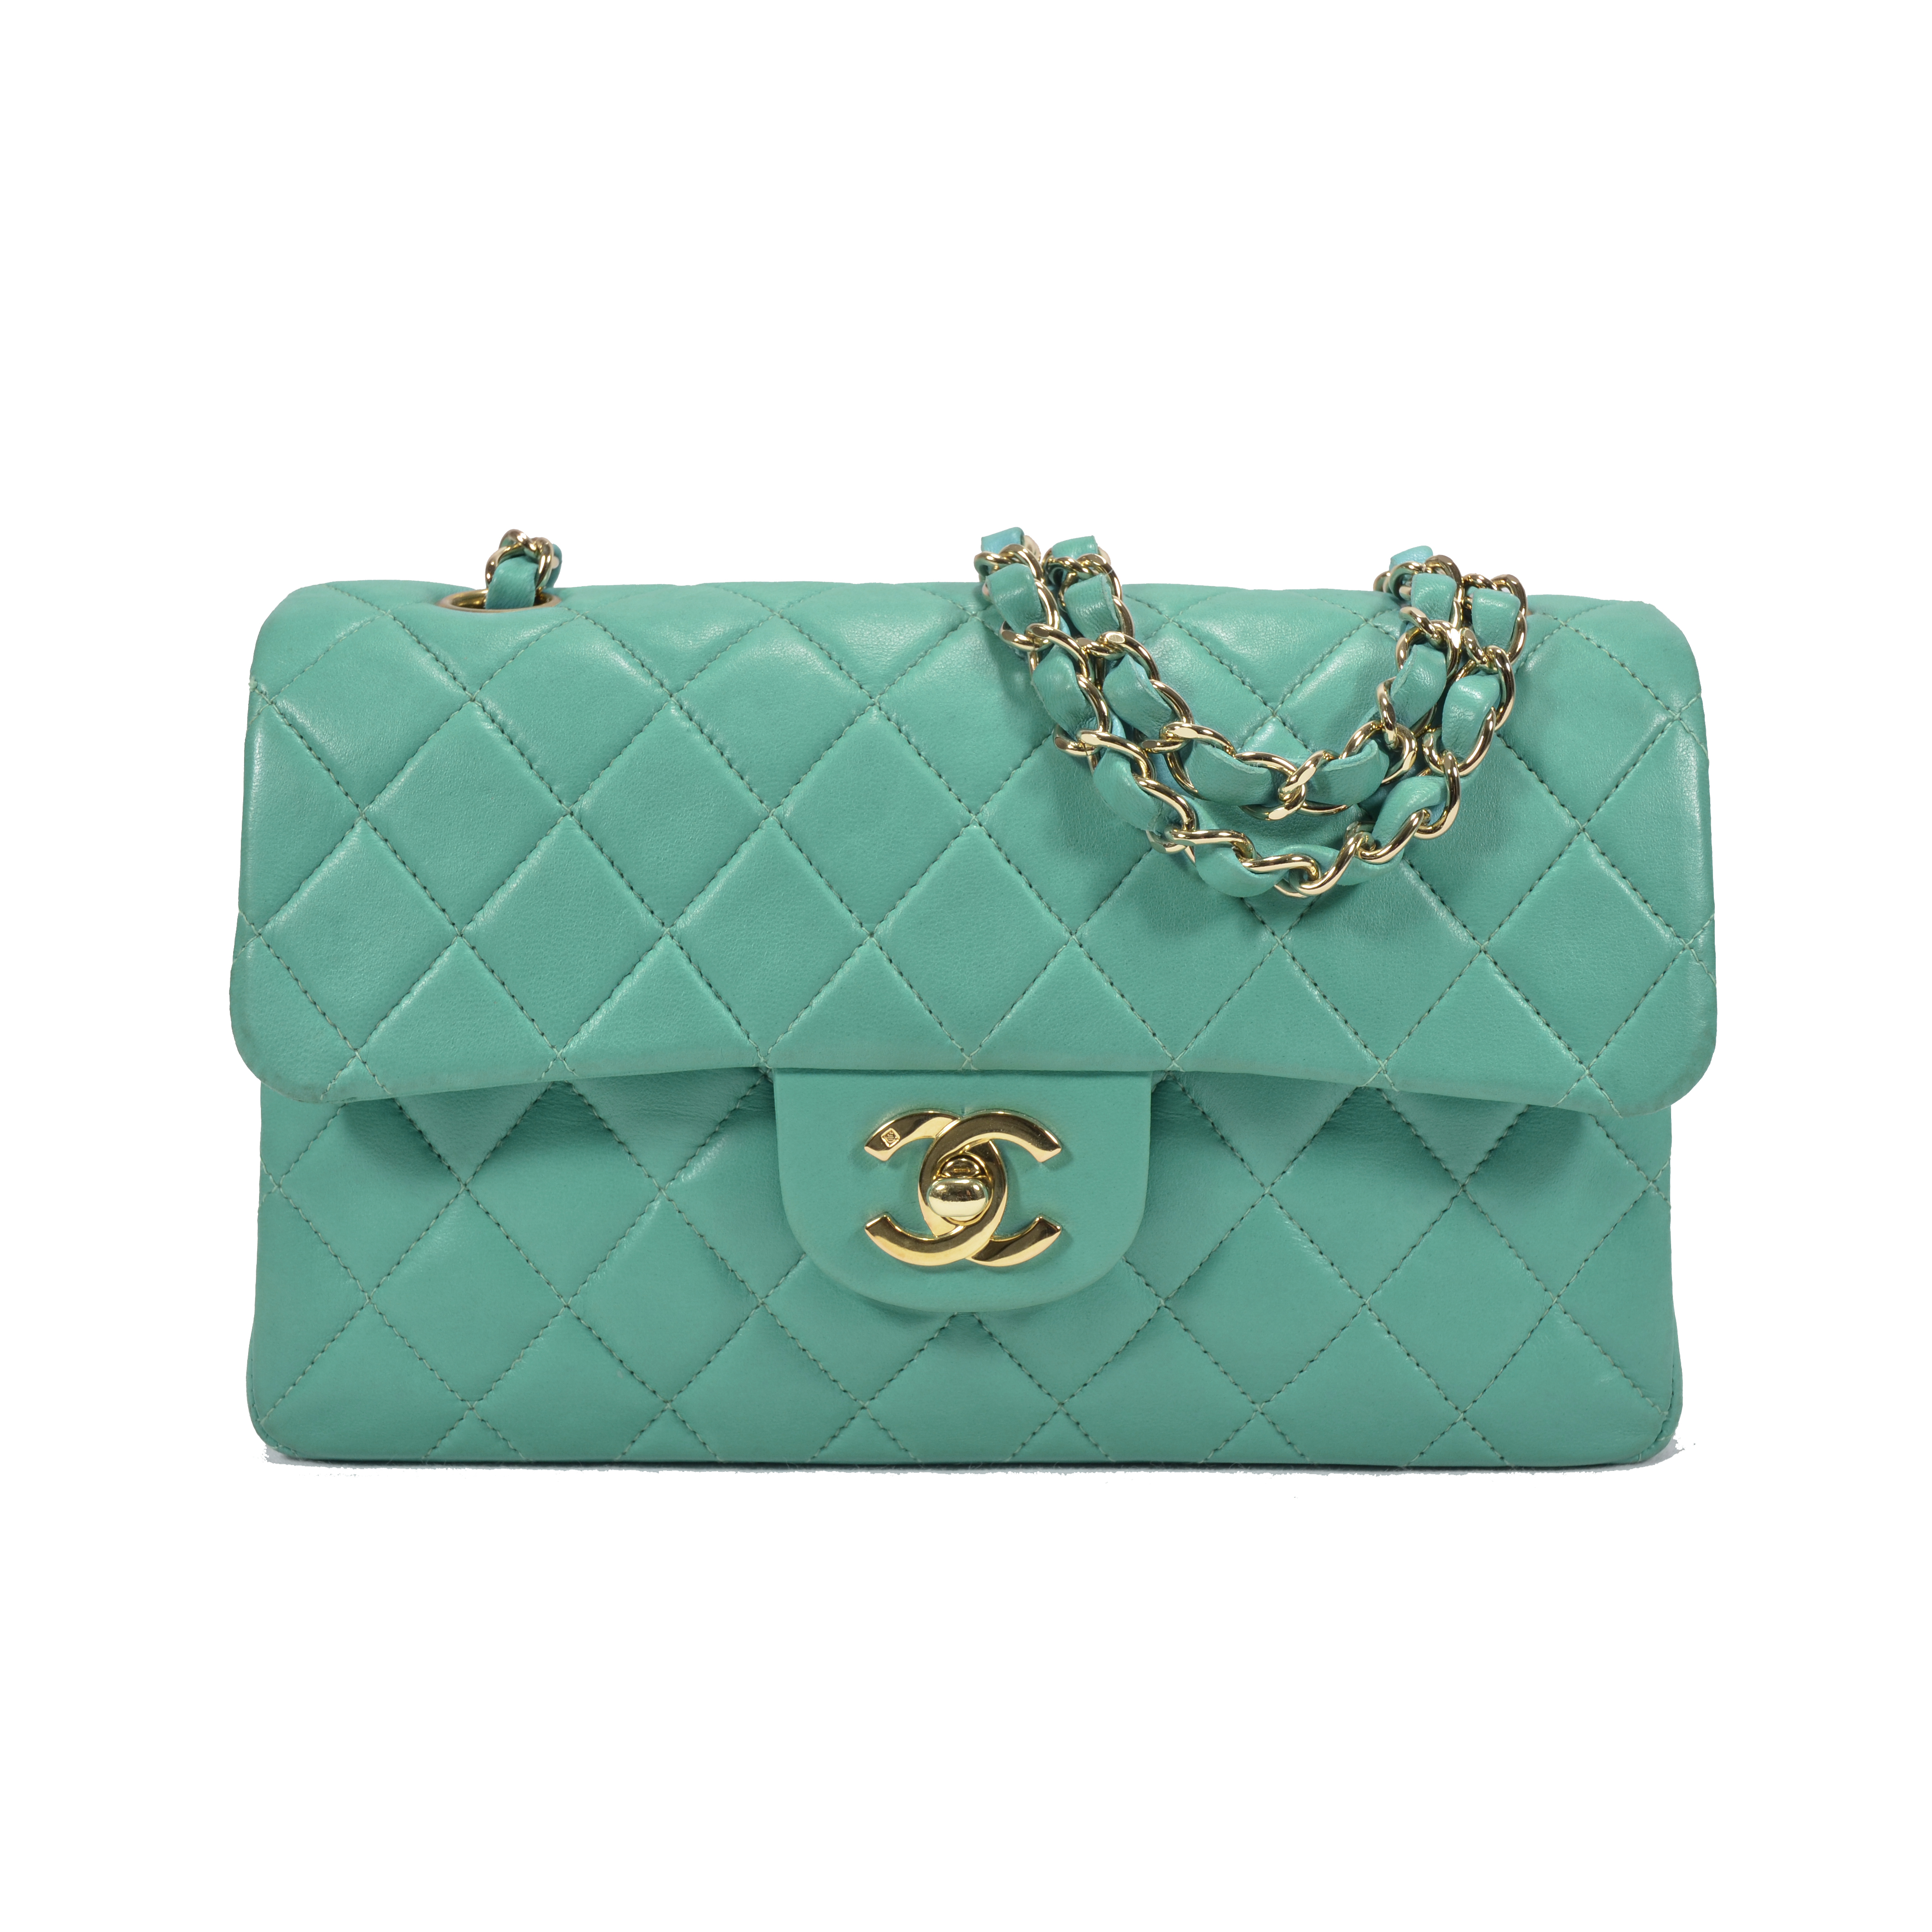 50c2f96865f0 Authentic Second Hand Chanel Turquoise Classic Double Flap Bag  (PSS-051-00145) | THE FIFTH COLLECTION